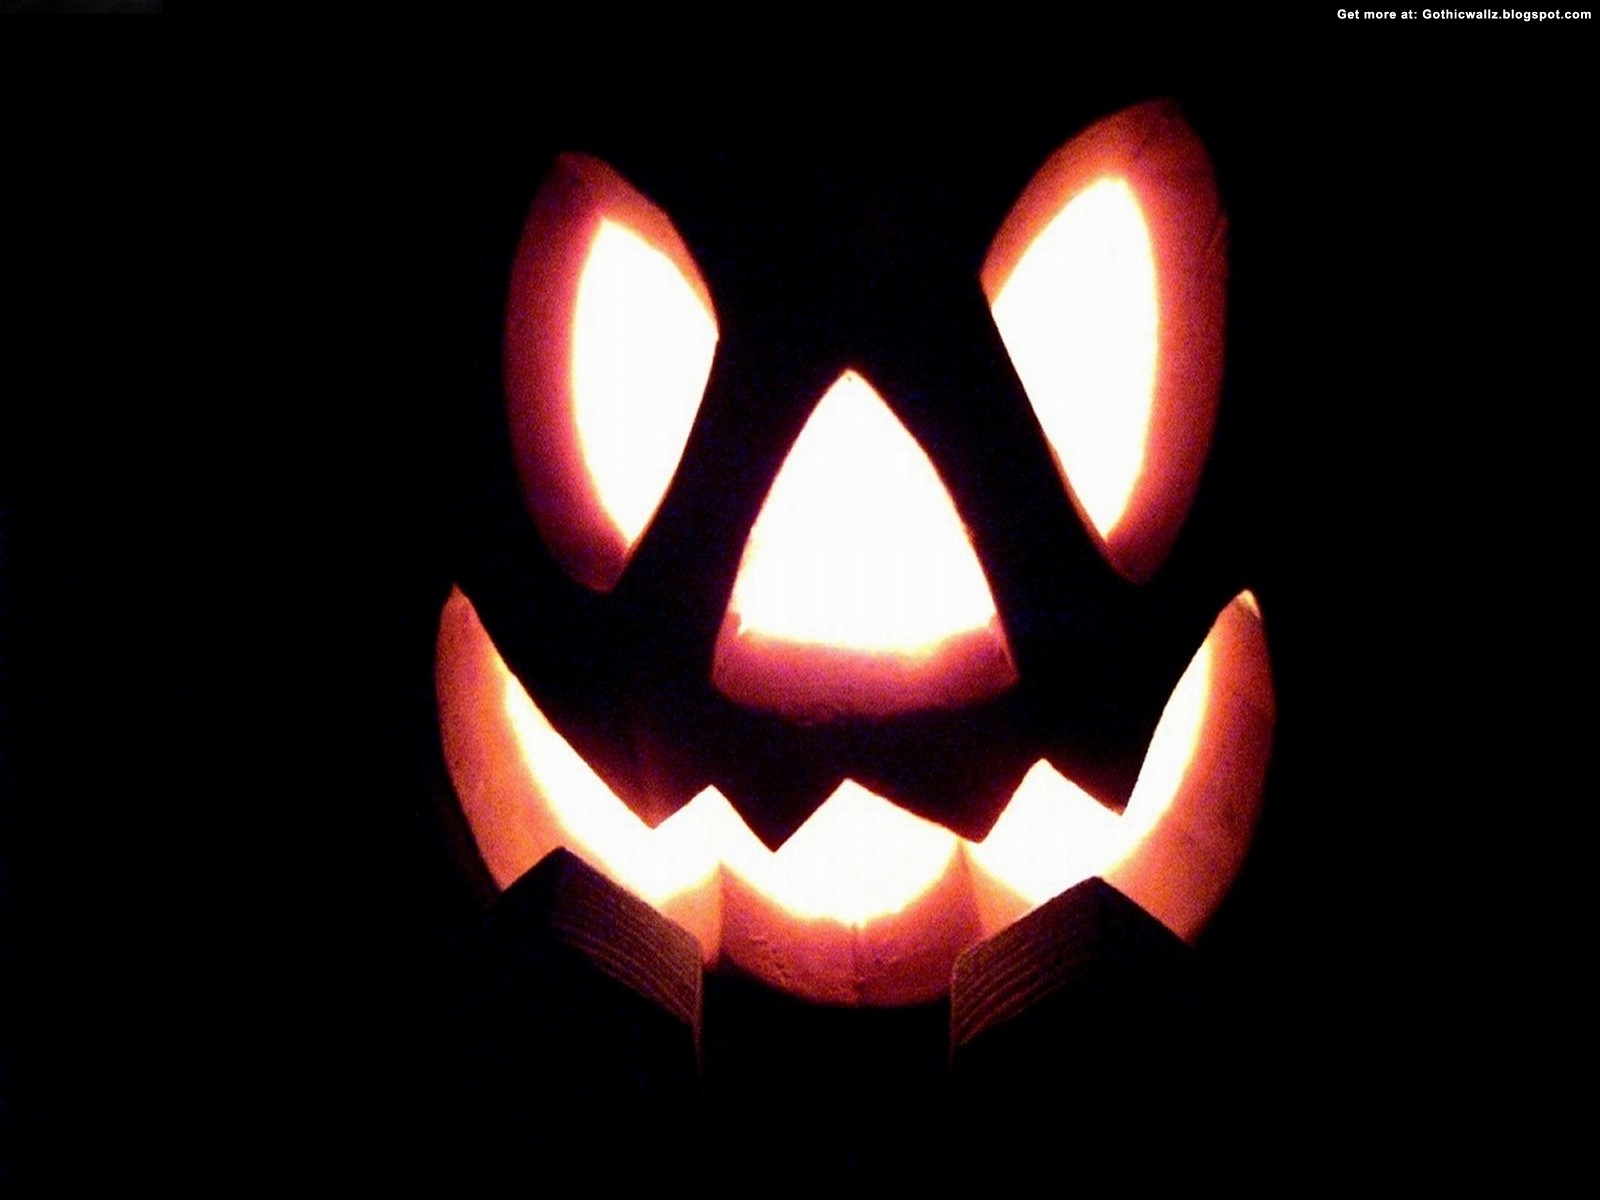 my spooky face   Gothic Wallpaper Download